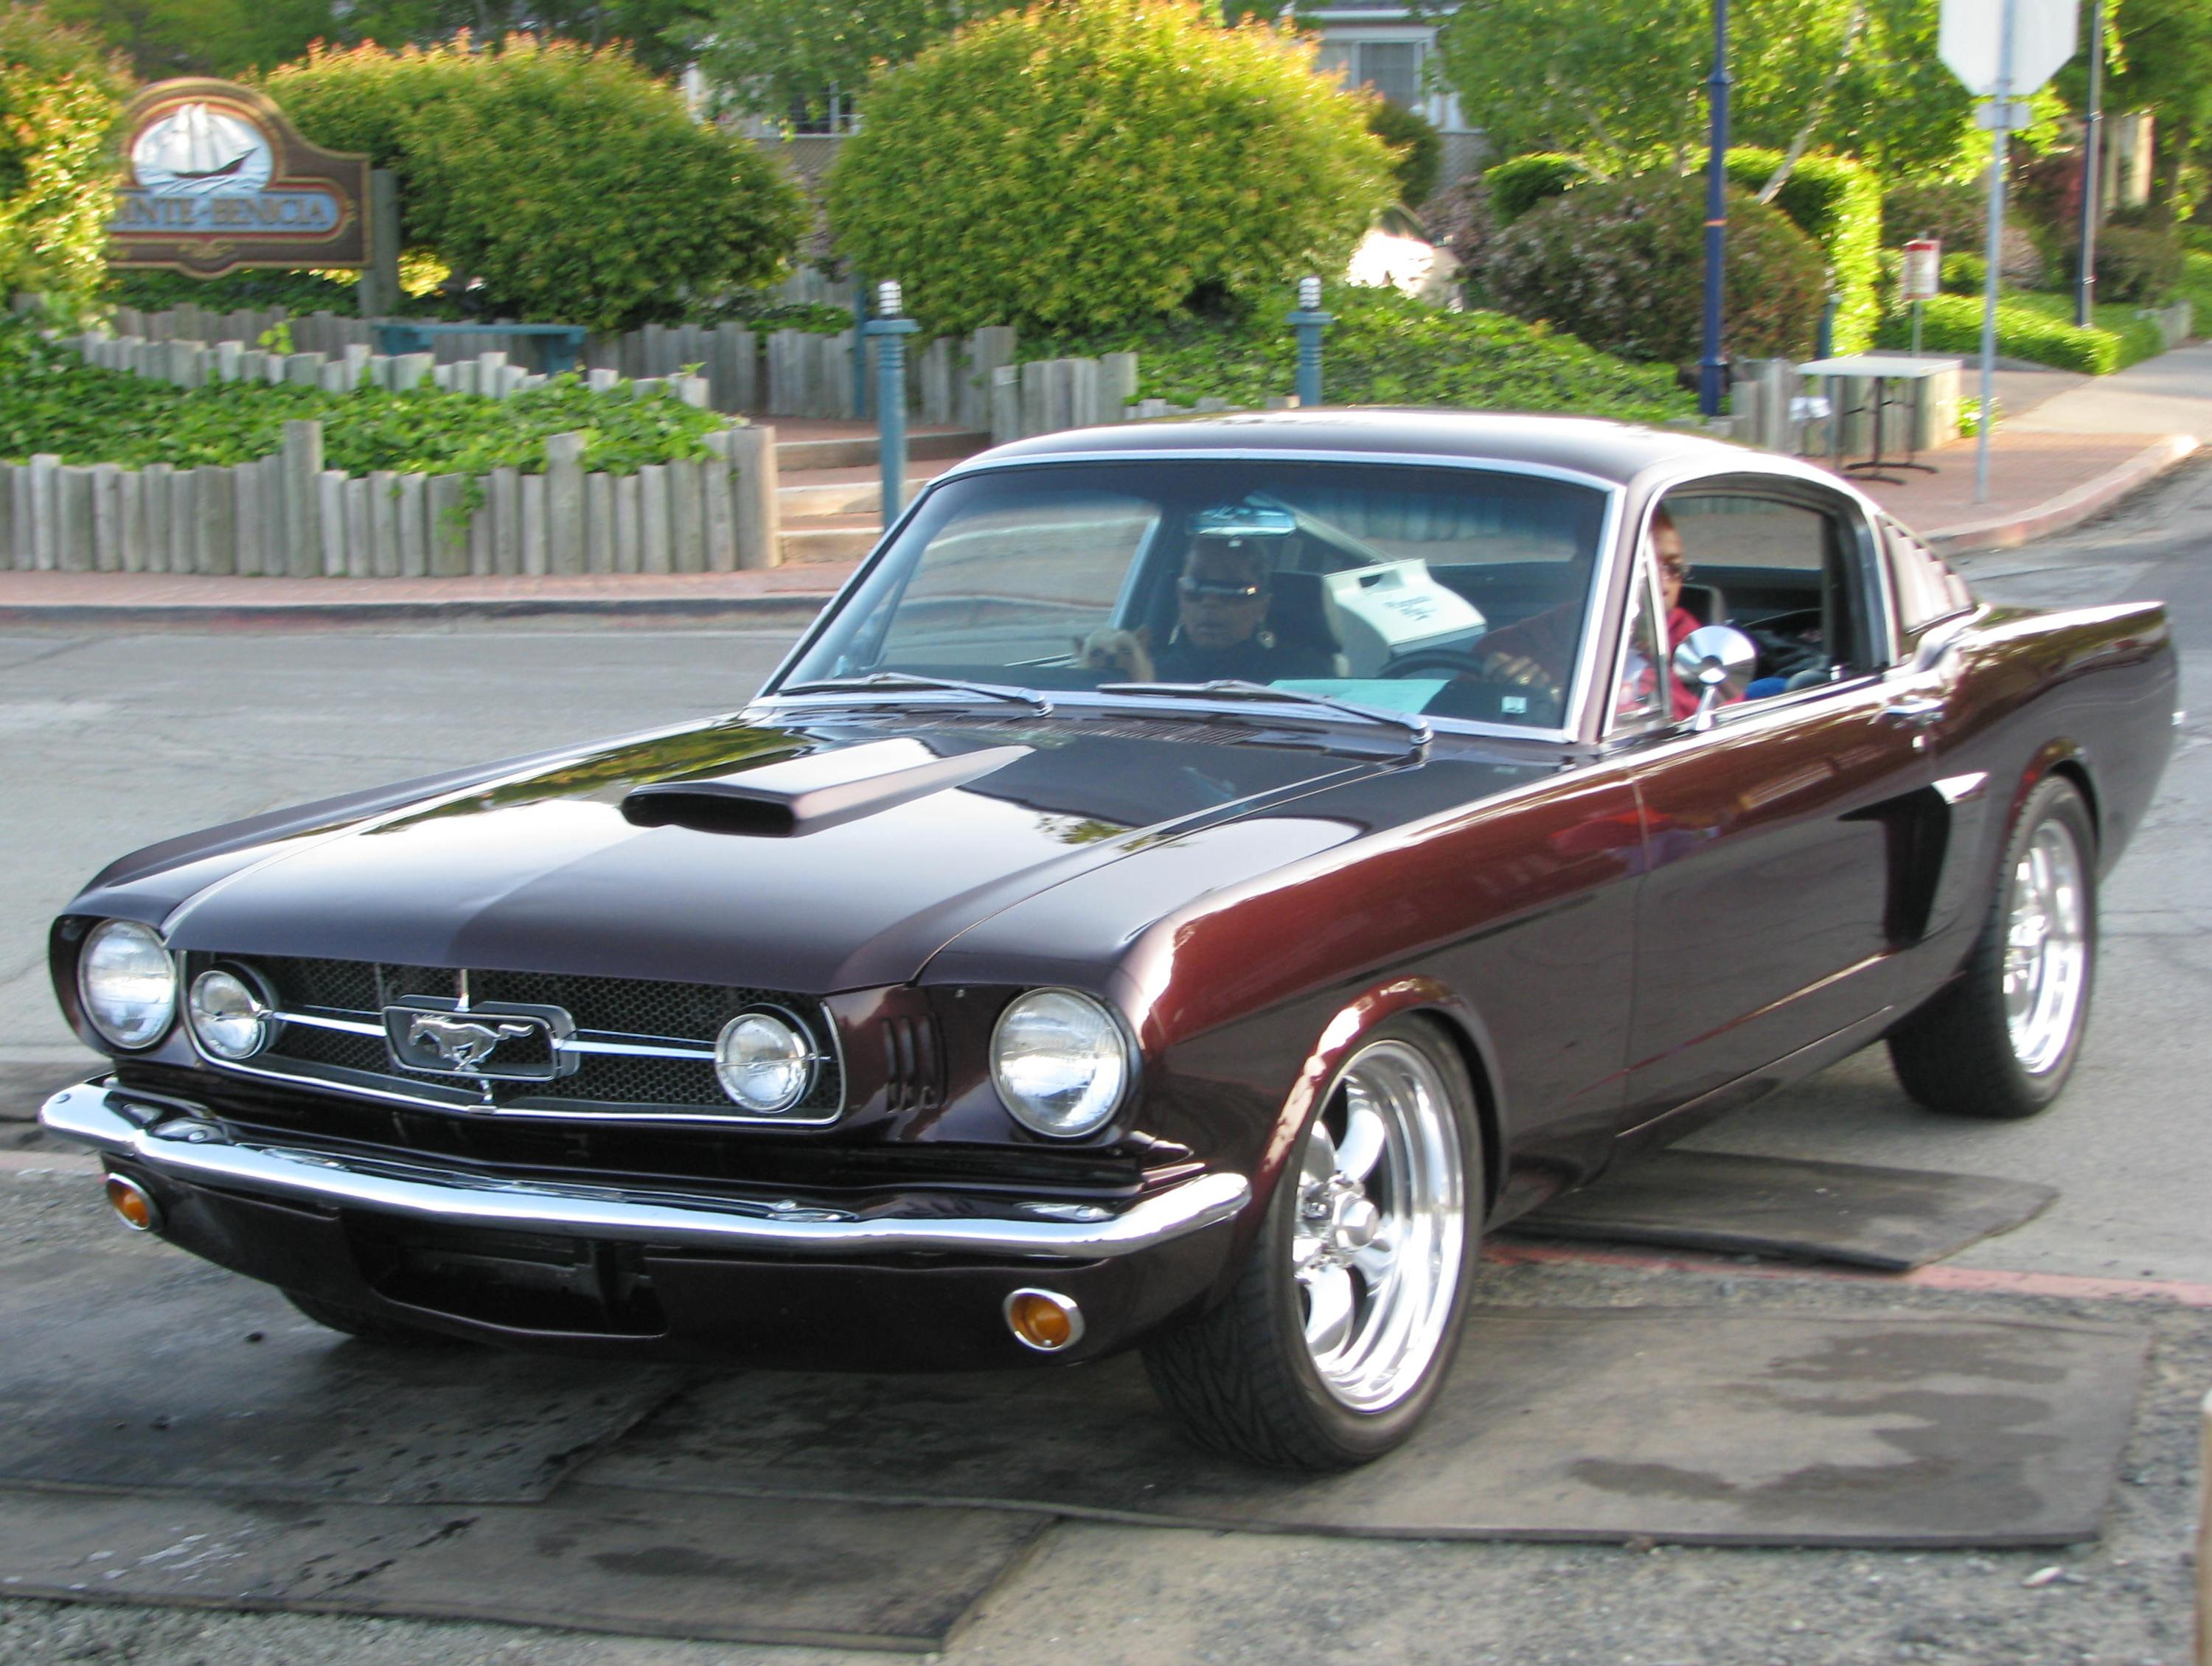 1965 Ford Mustang Coupe (Custom) 'GELETHA' 1 | Flickr - Photo Sharing!